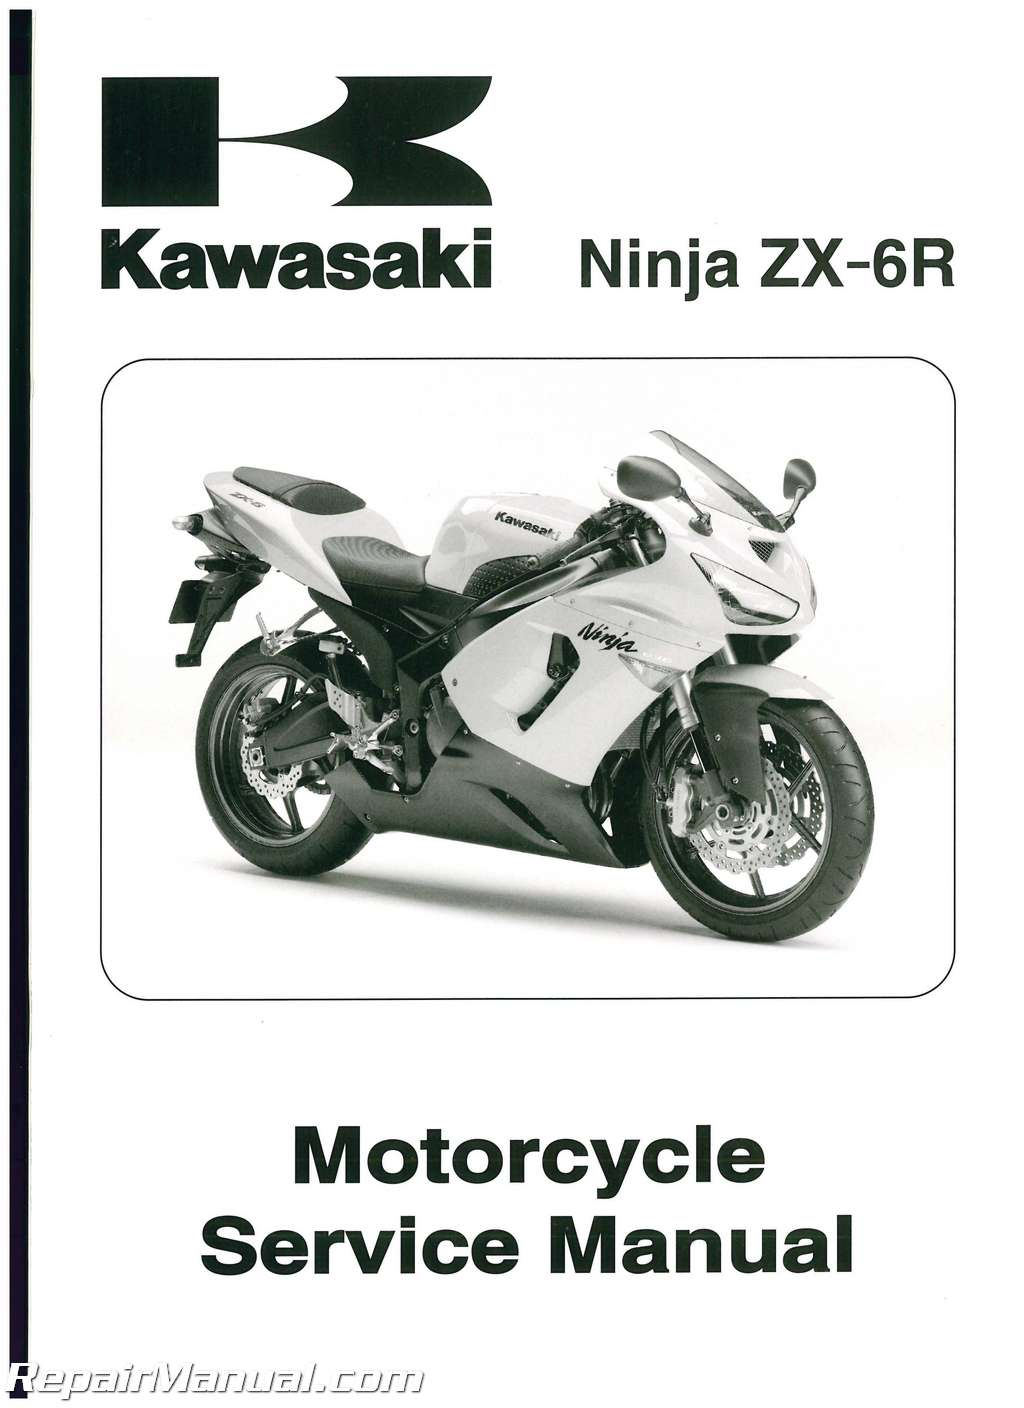 kawasaki zx6r motorcycle service manual 2005 2006 99924 1345 03 ebay rh ebay com 2005 kawasaki zx6r service manual pdf 2005 kawasaki 636 parts manual